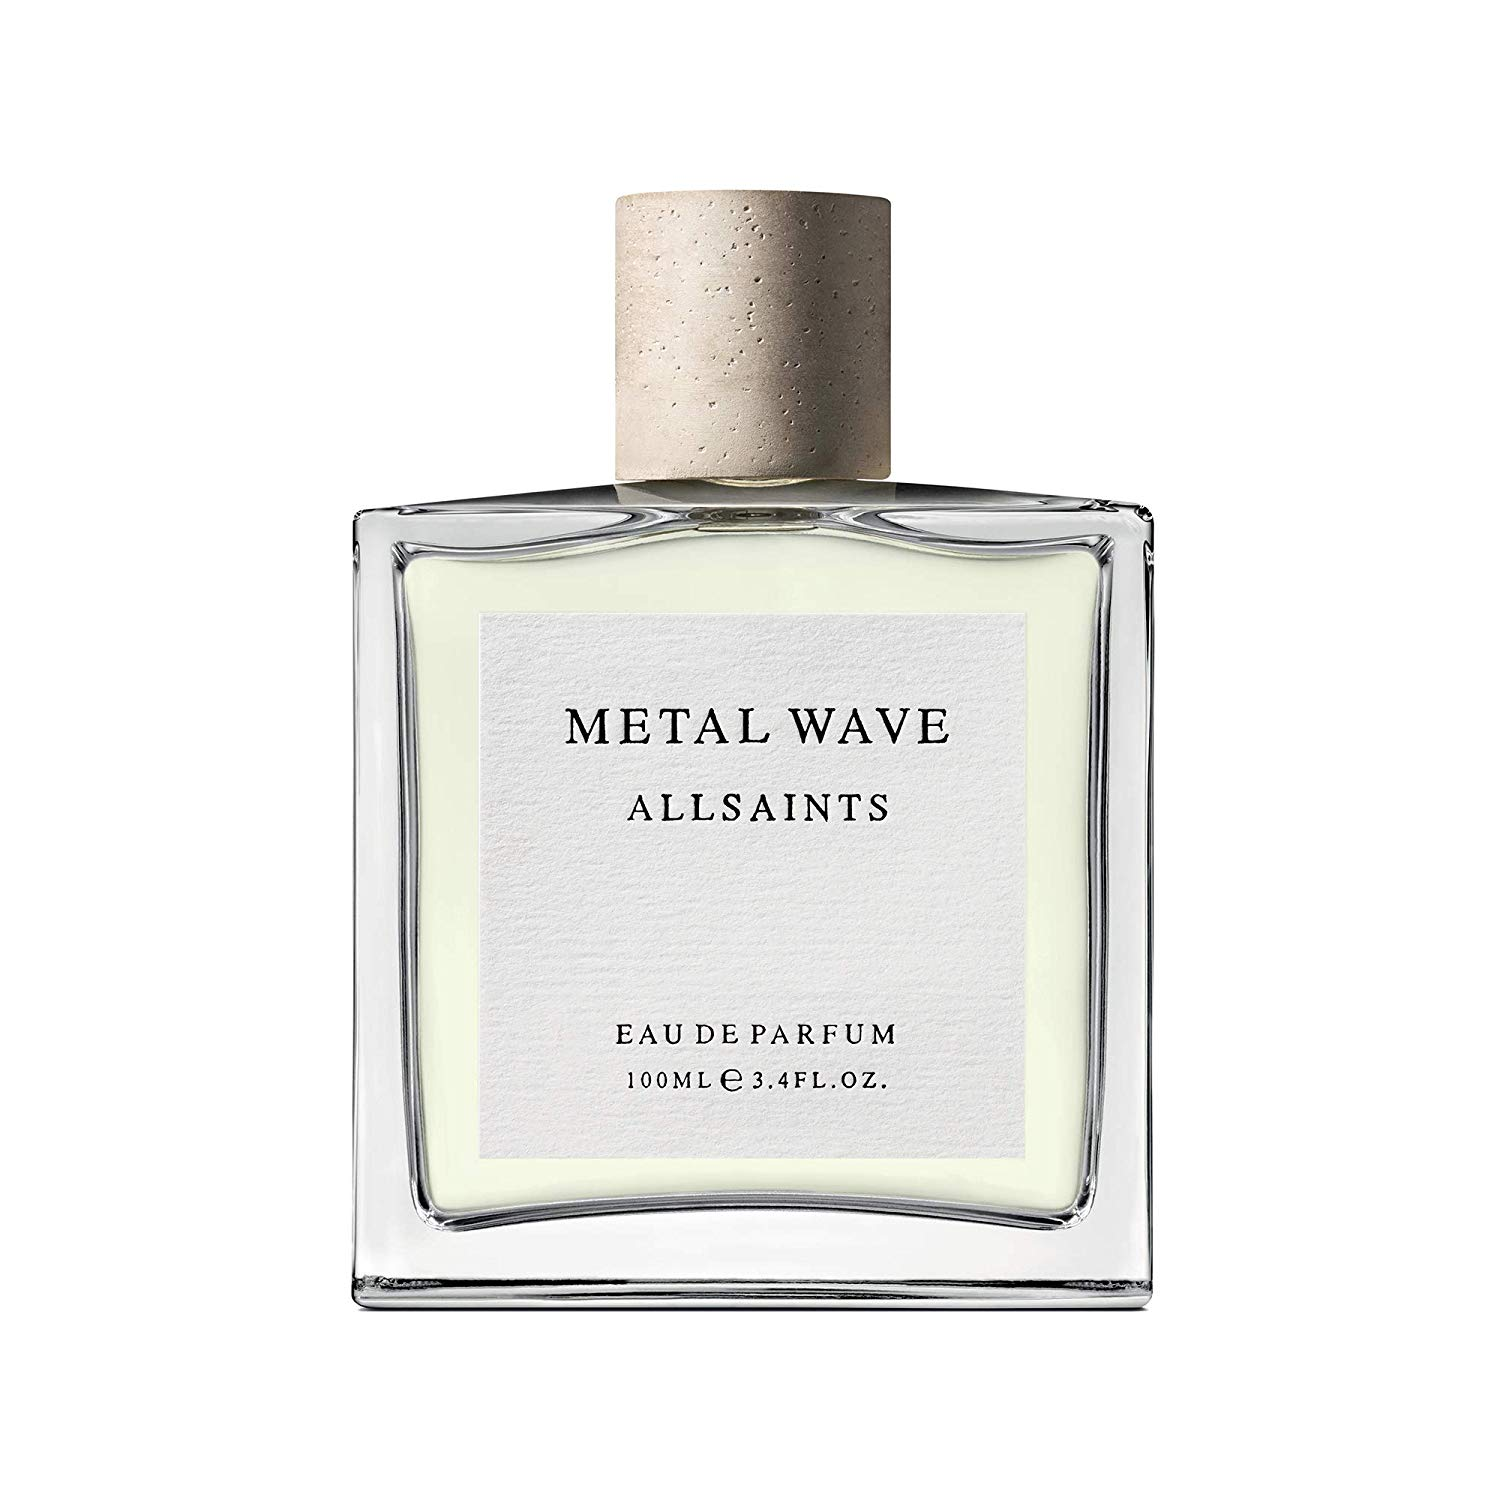 AllSaints Metal Wave 3.4OZ / 100ML Eau De Parfum Spray